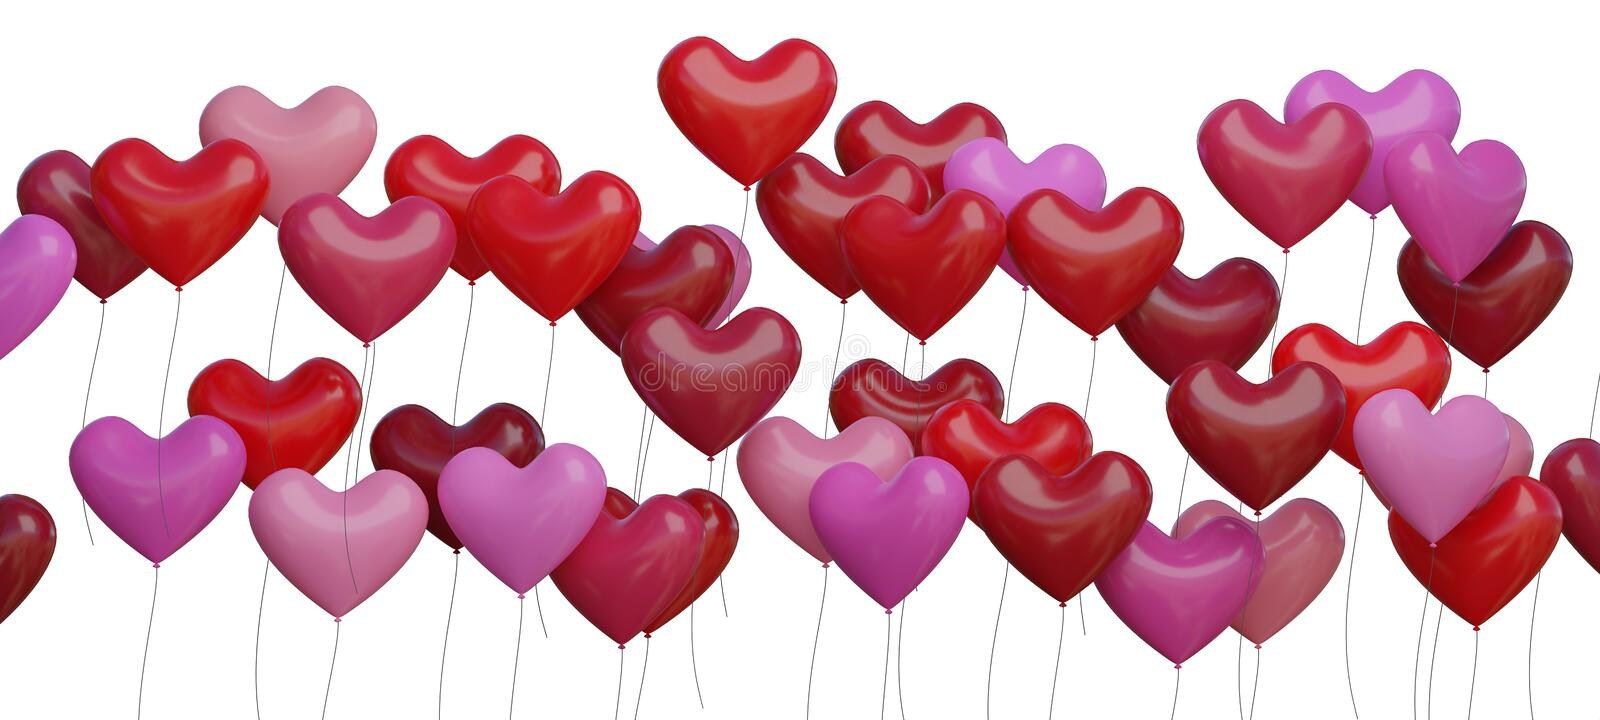 Many red heart shaped balloons isolated on white background. 3D rendered illustration.  stock illustration